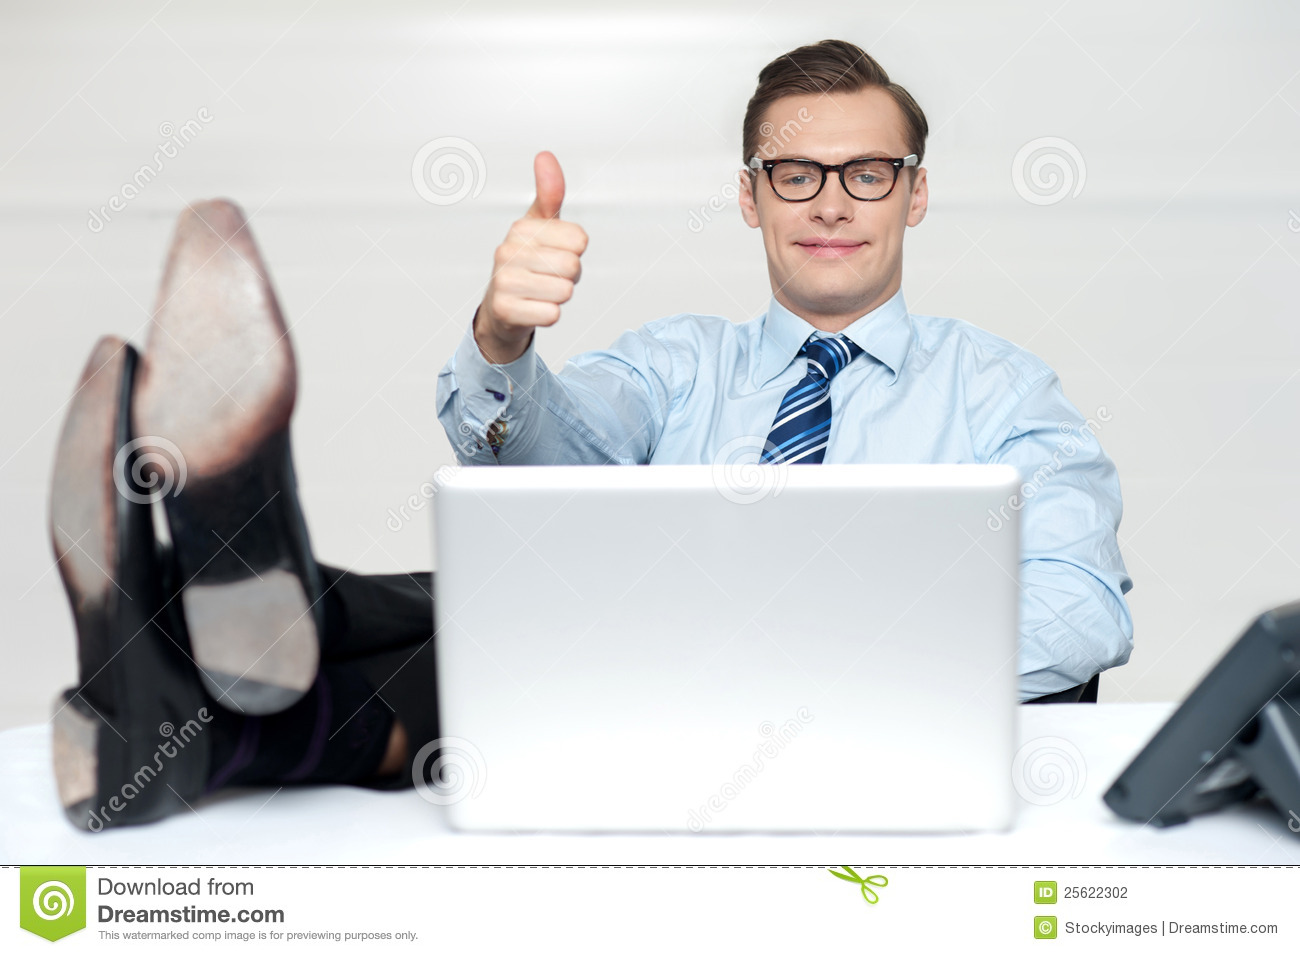 Thumbs Up Guy Relaxing With Legs On Work Desk Stock Photography ...